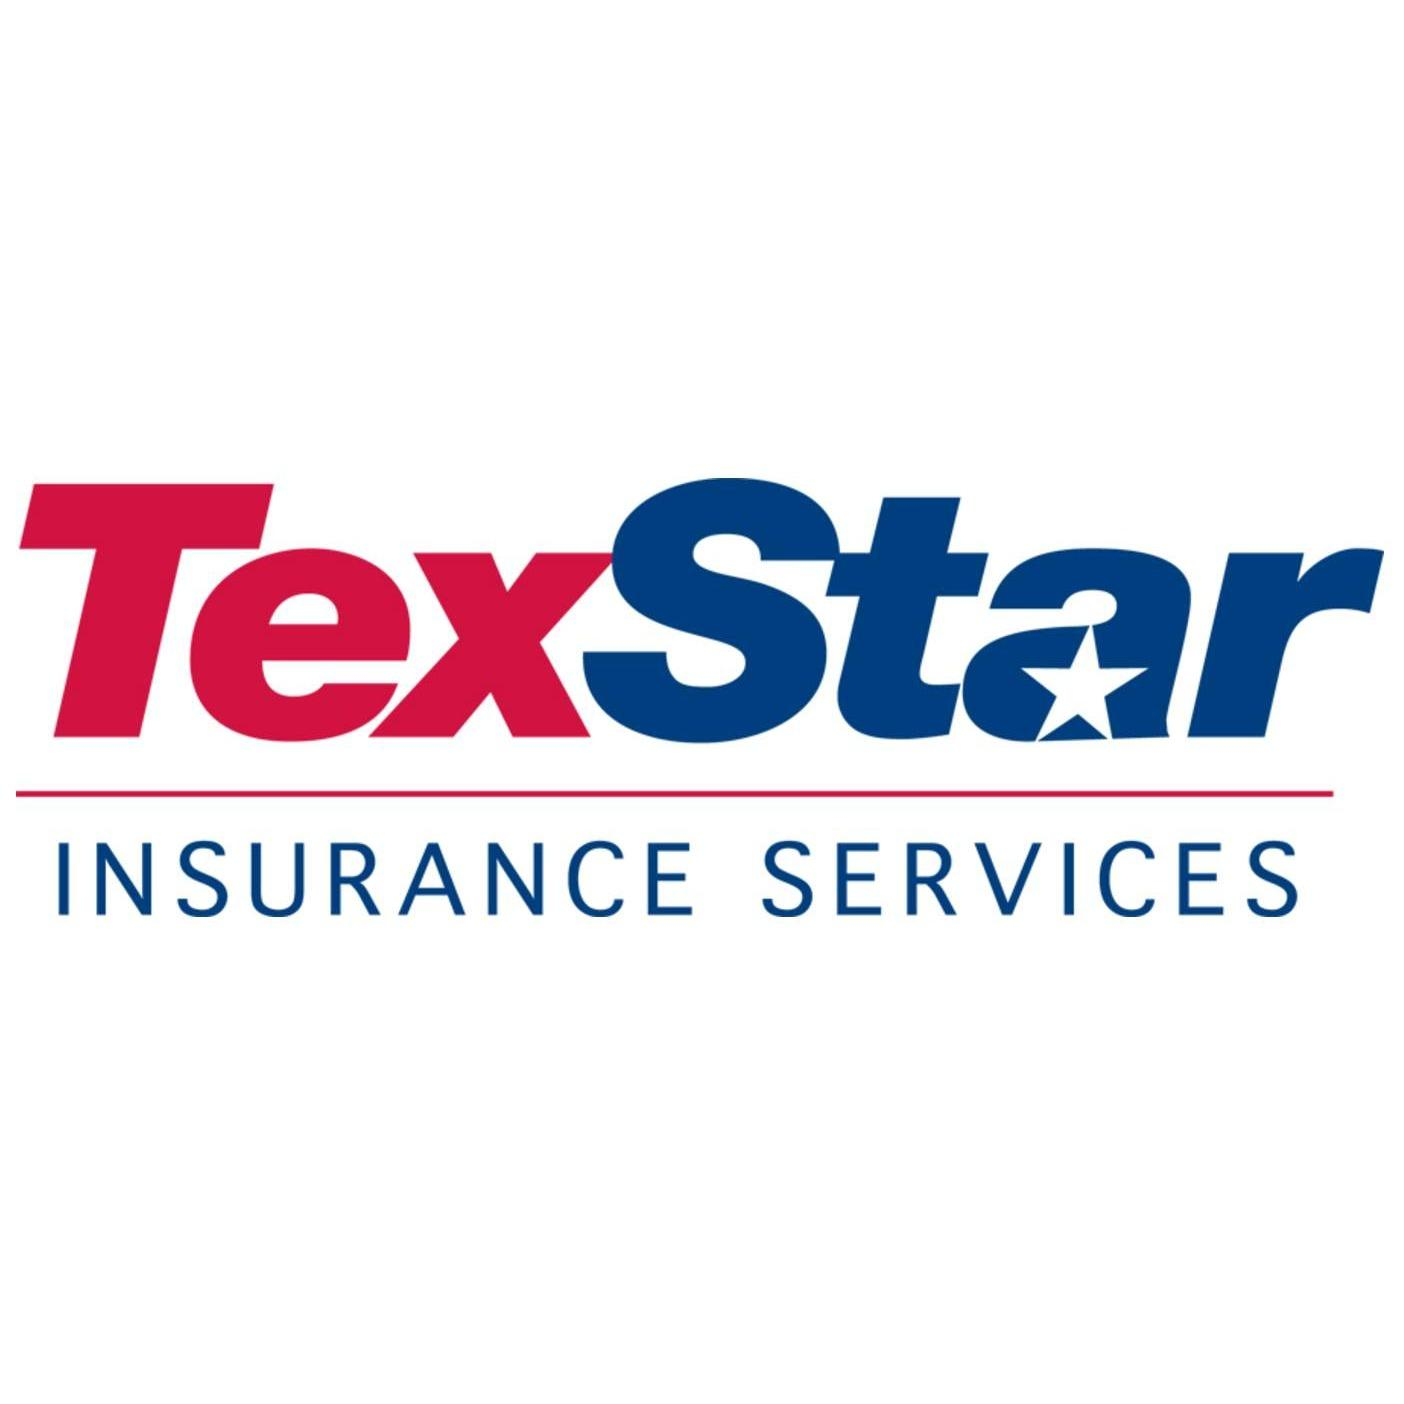 TexStar Insurance Services